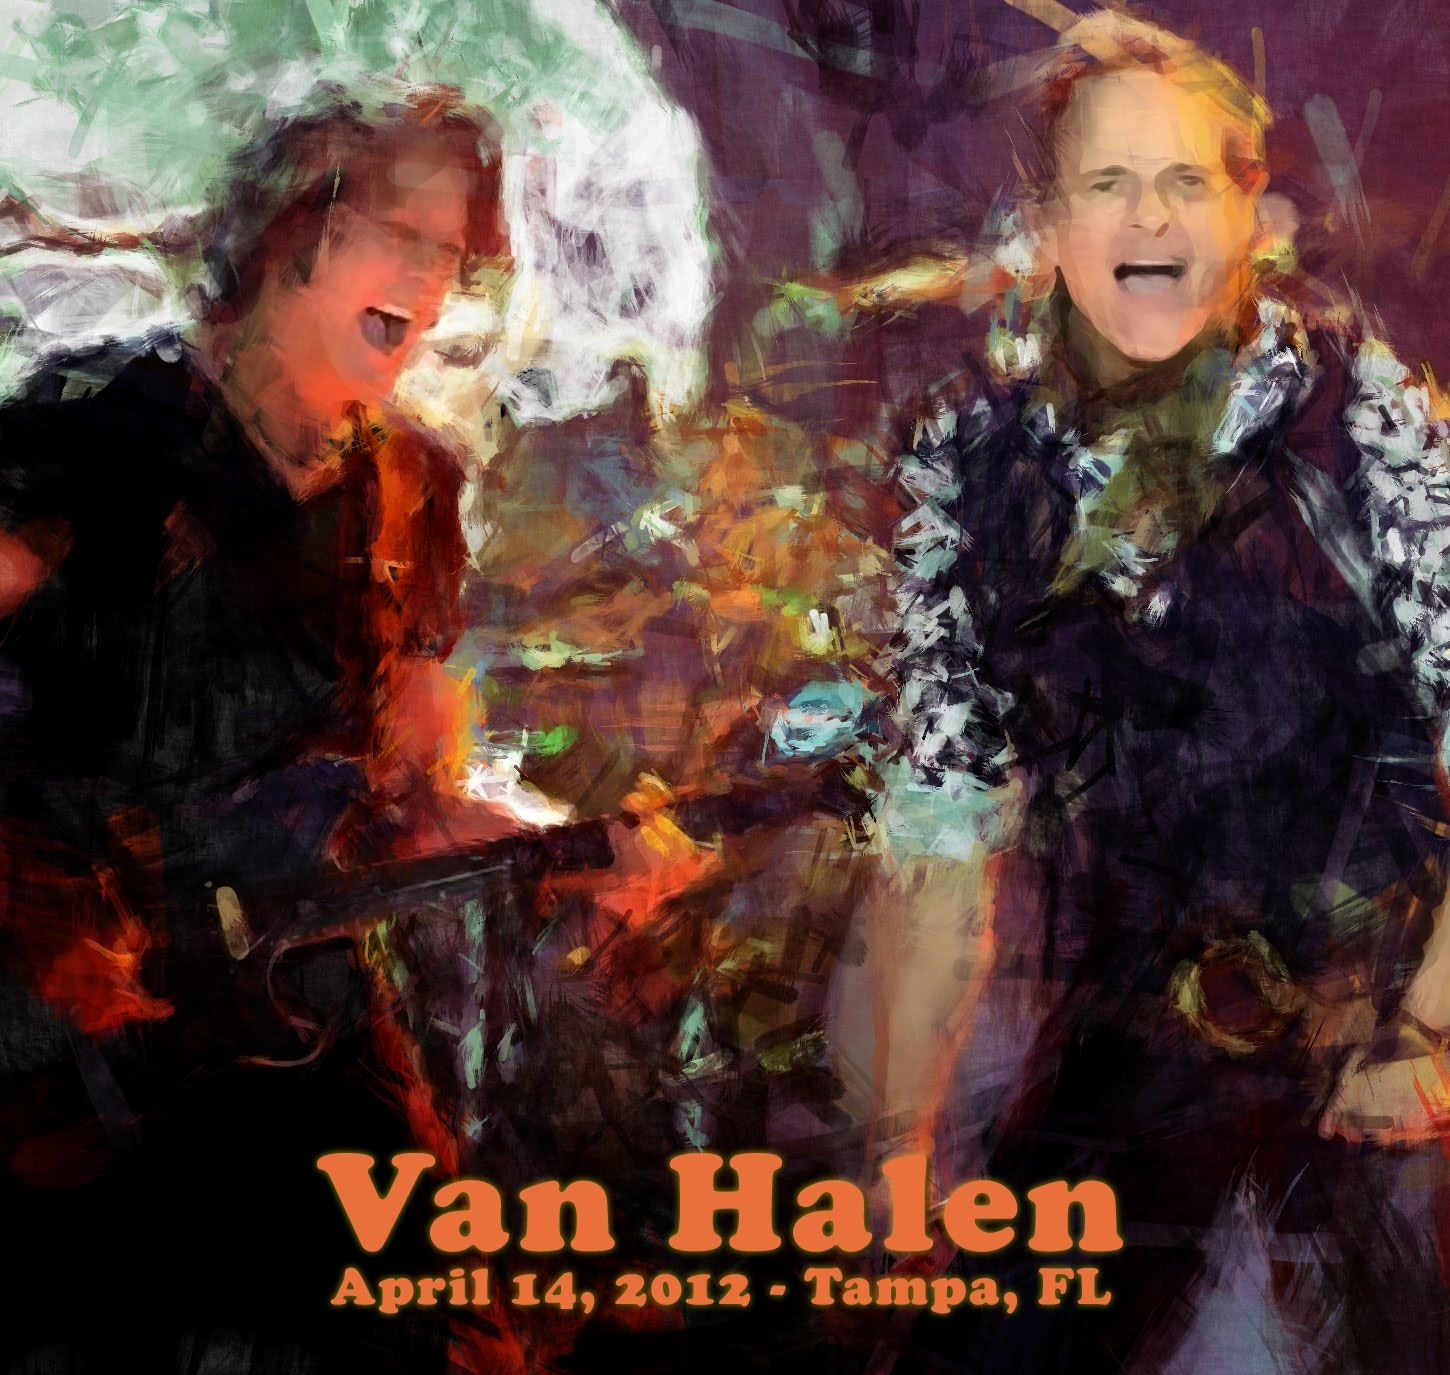 Van Halen - Live at Bay Times Forum, Tampa, 14 April 2012 (CD & Covers